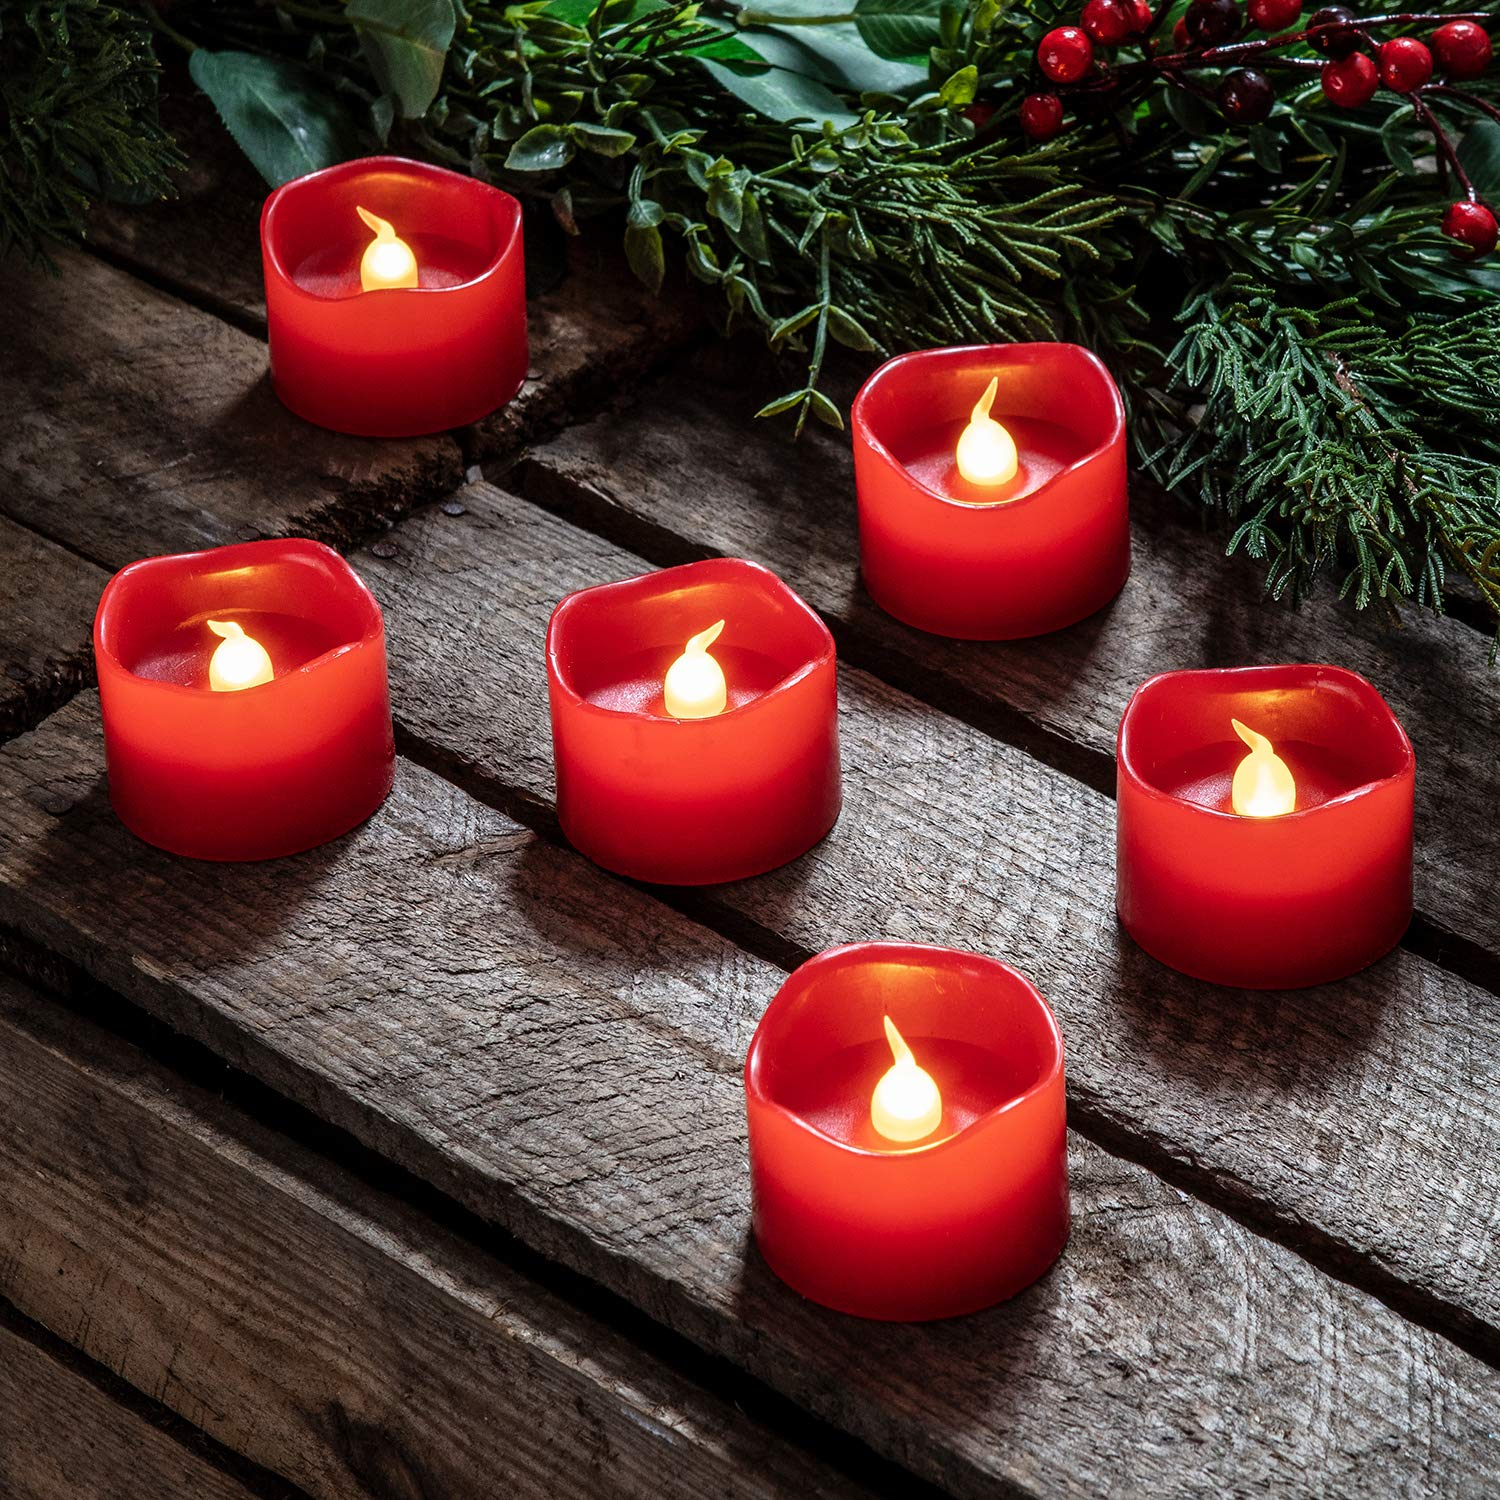 Lights4fun Inc. Set of 6 Red Wax Battery Operated Flameless LED Votive Candles